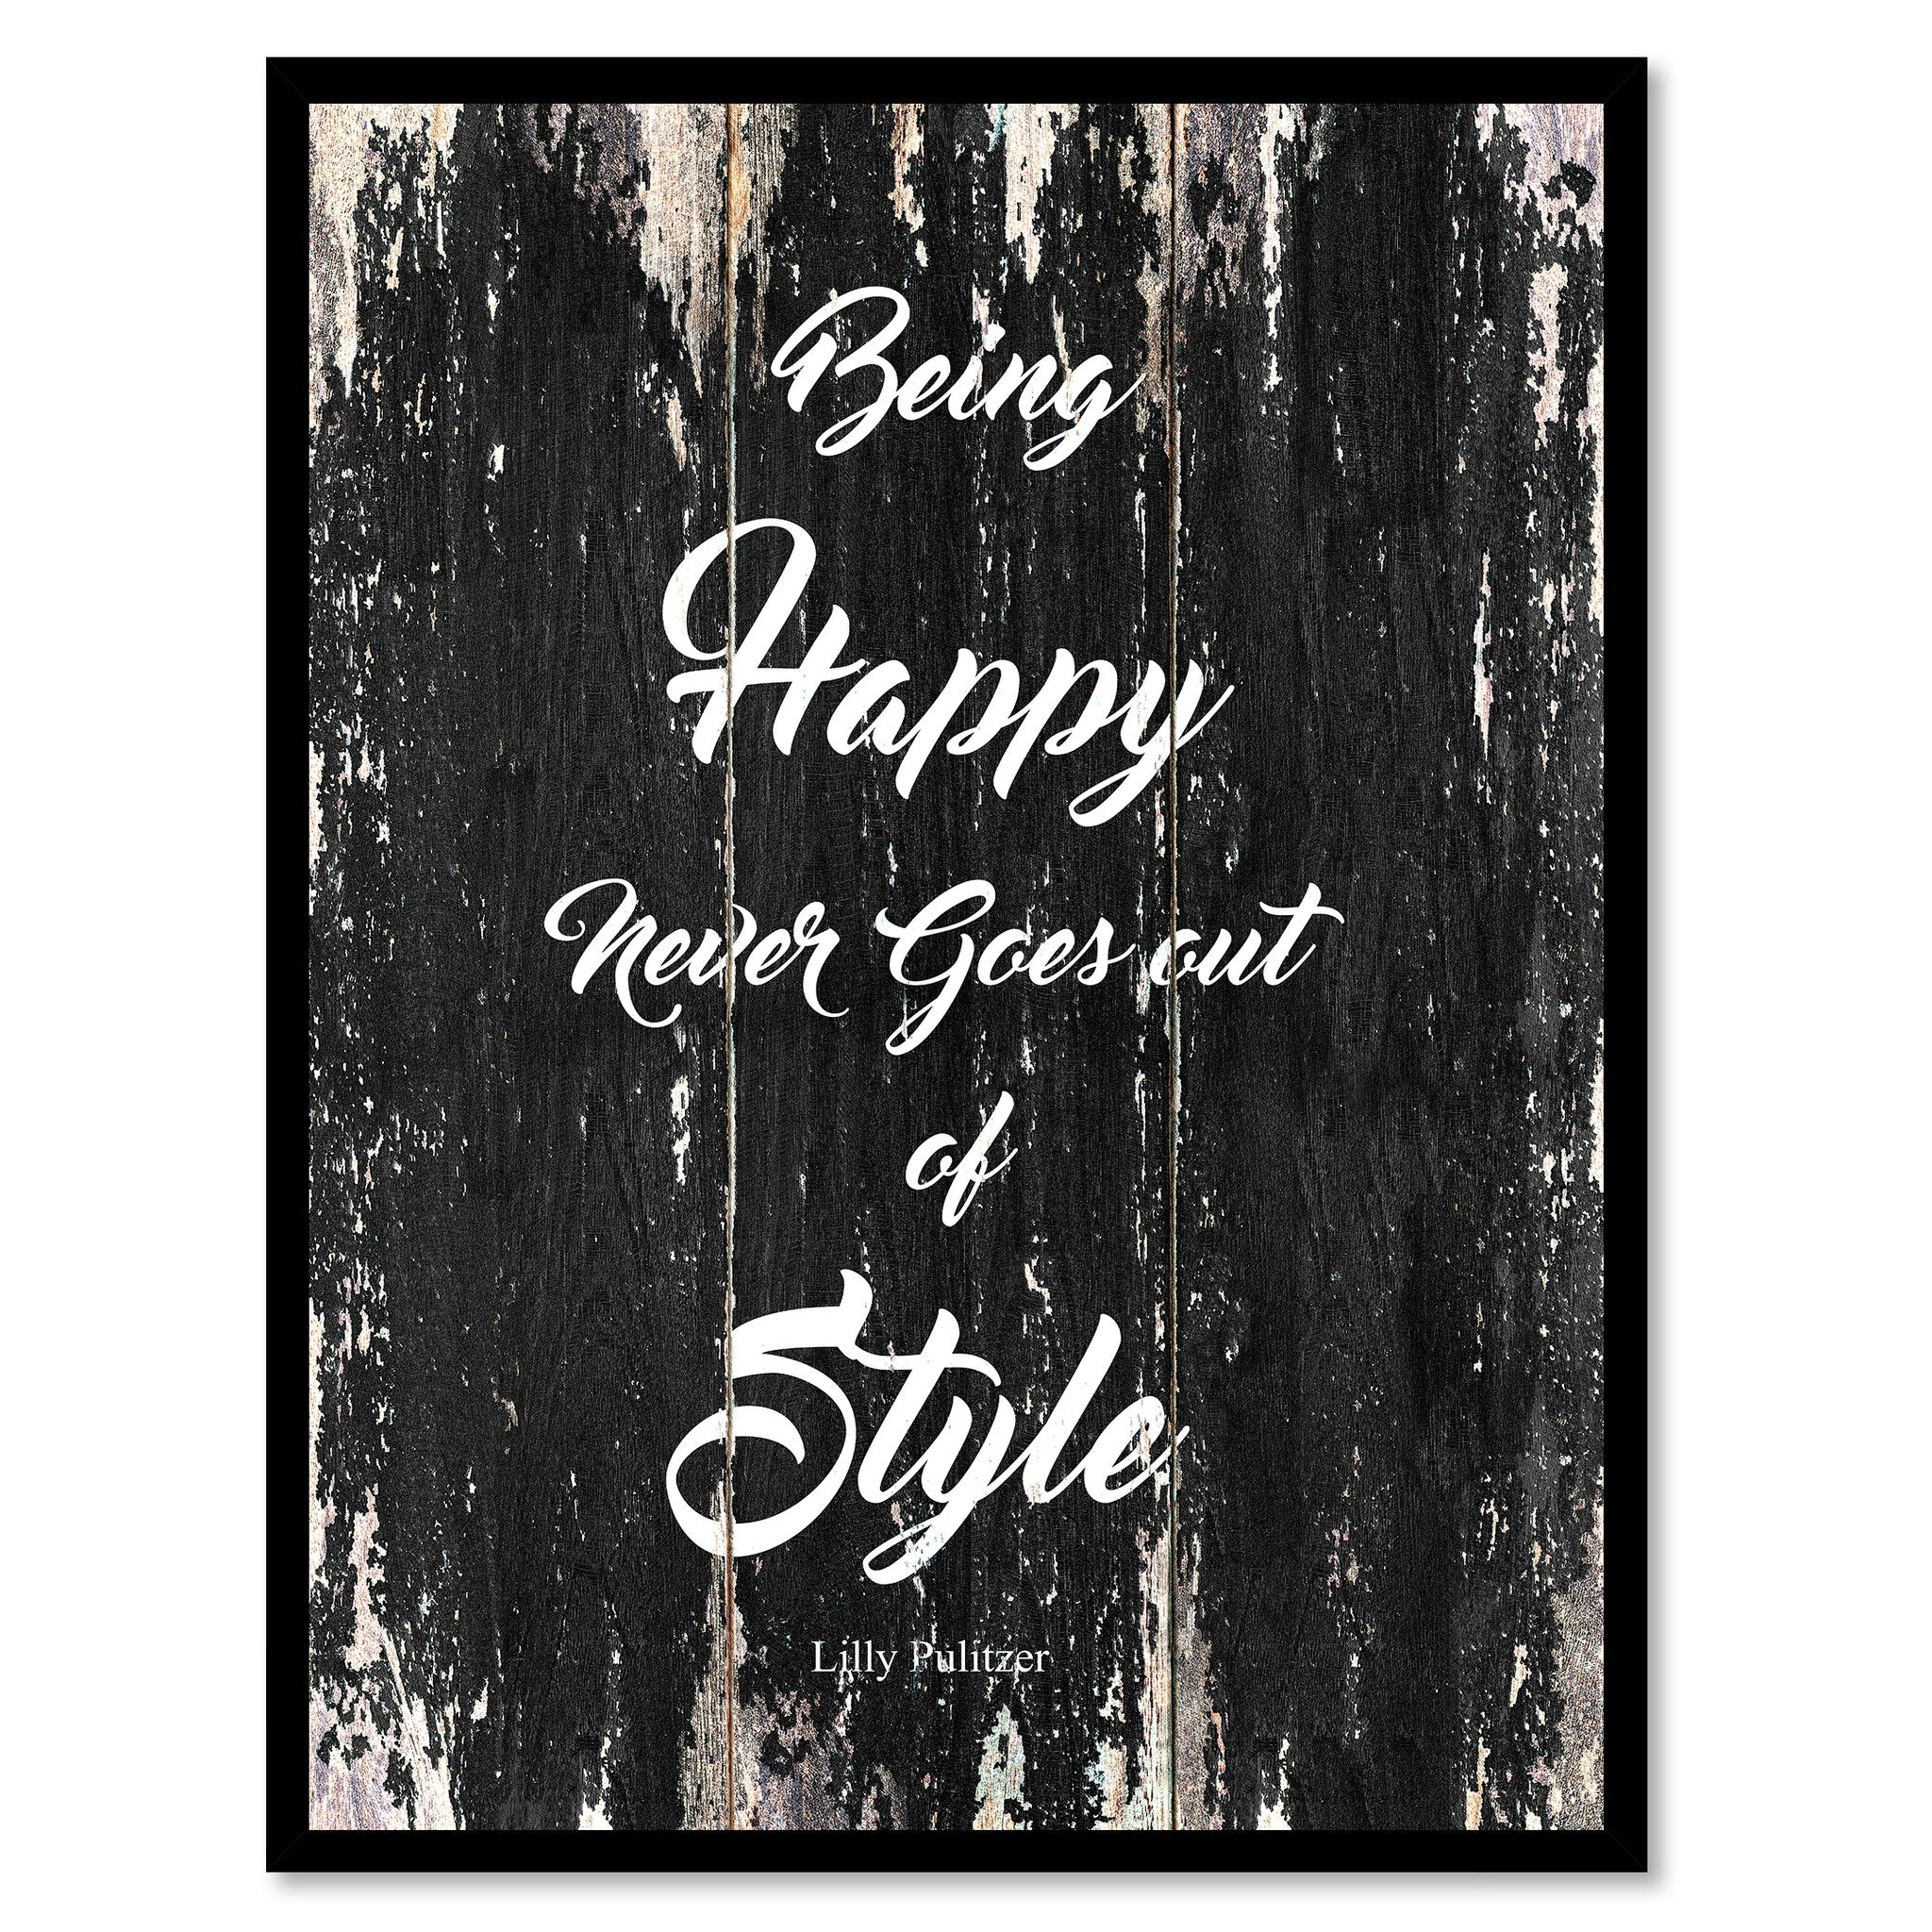 Being Happy Never Goes Out Of Style Lilly Pulitzer Quote Saying Canvas Print with Picture Frame Home Decor Wall Art